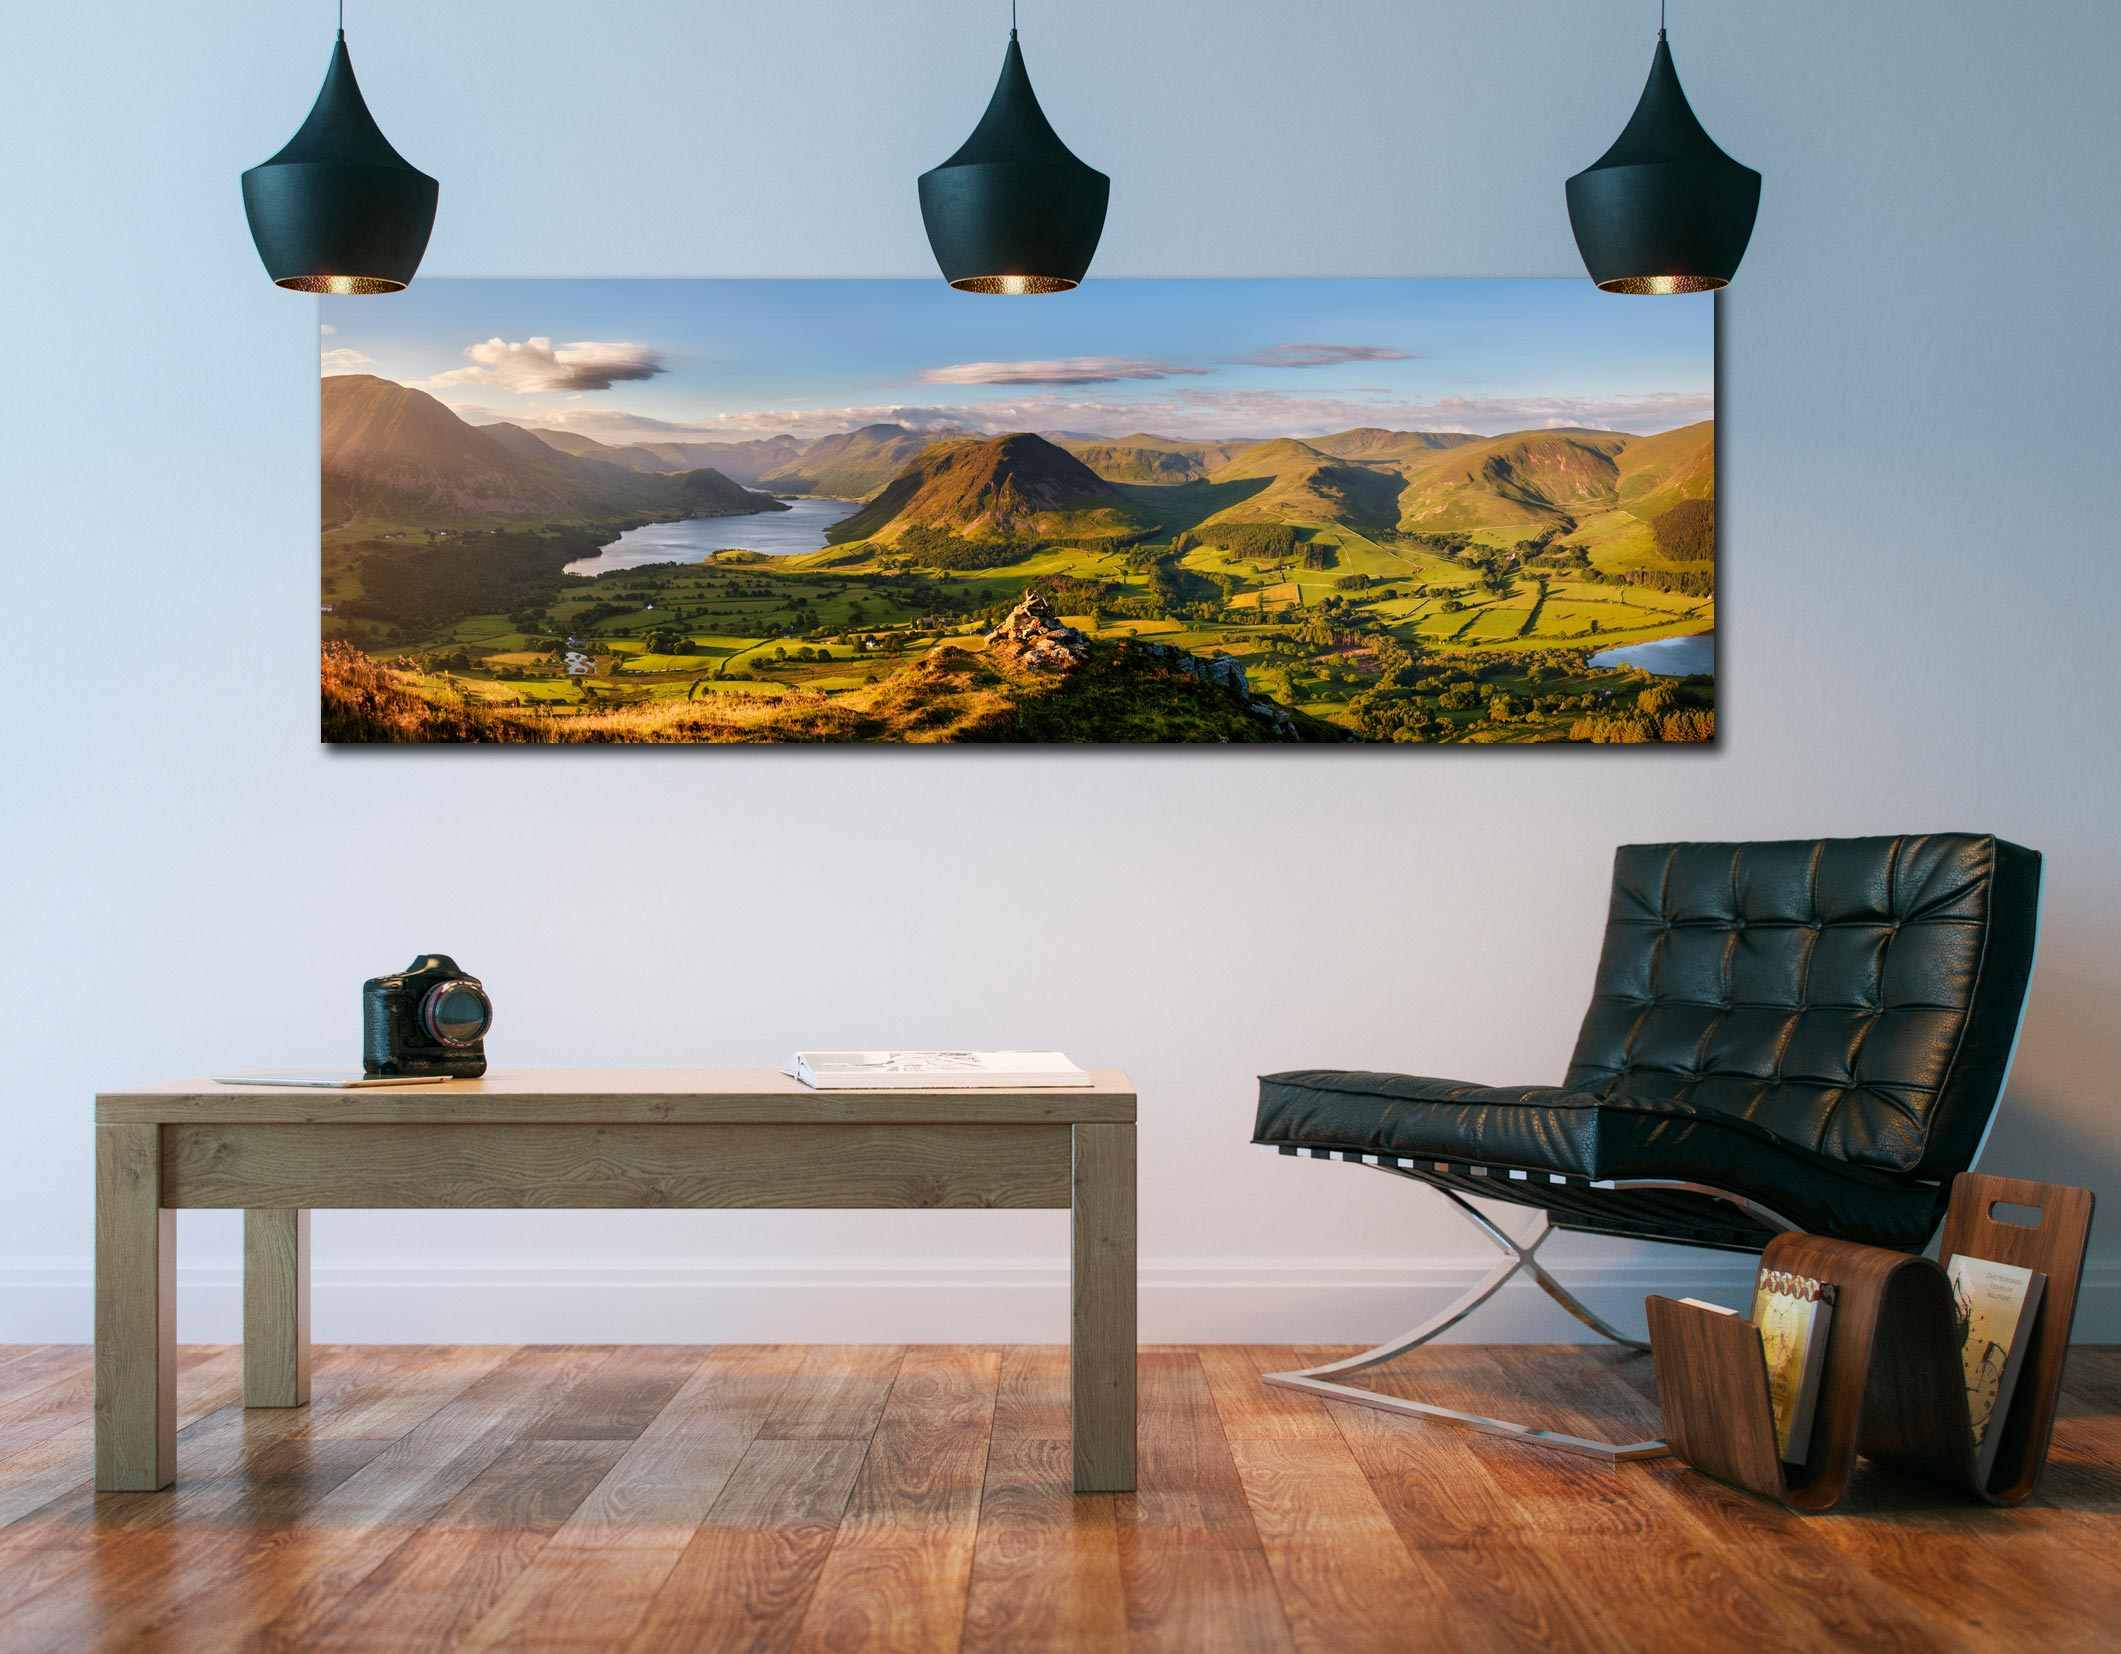 View from the summit of Loweswater Fell down the Buttermere valley - Print Aluminium Backing With Acrylic Glazing on Wall